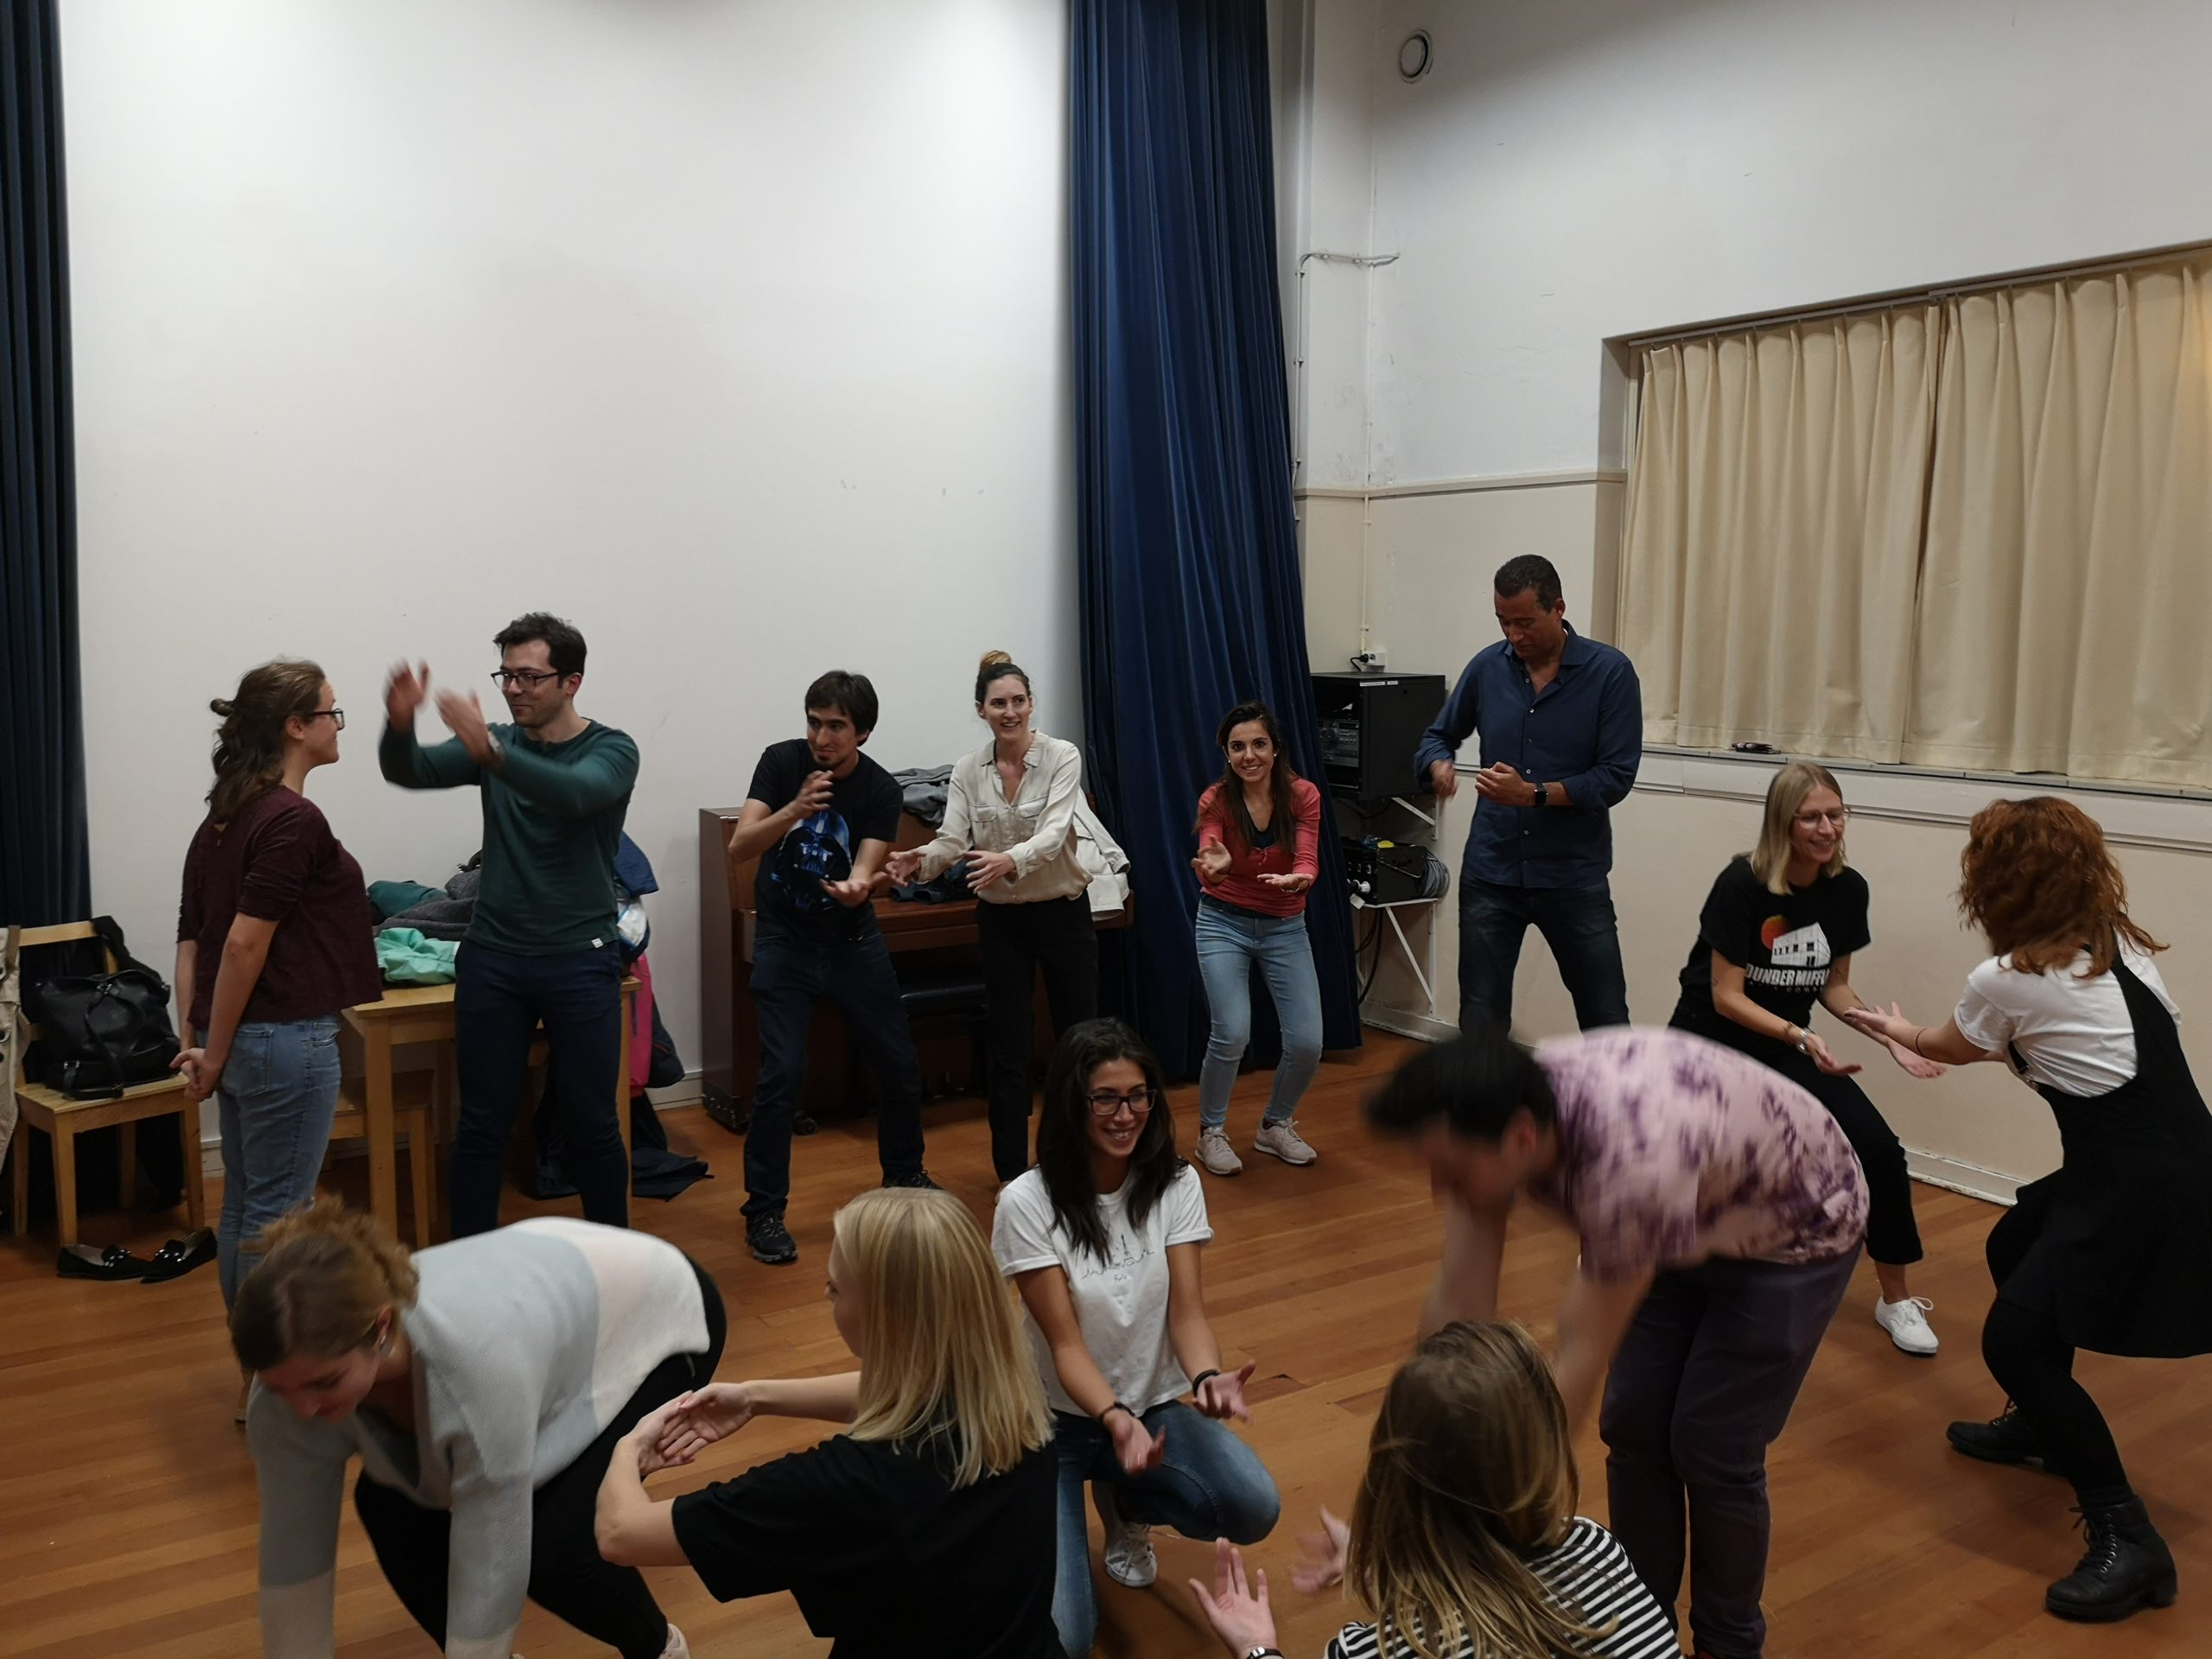 From the improv and physical class. A group of people do an exercise. Some are sitting, some kneeling, some standing, everybody is moving their arms differently.